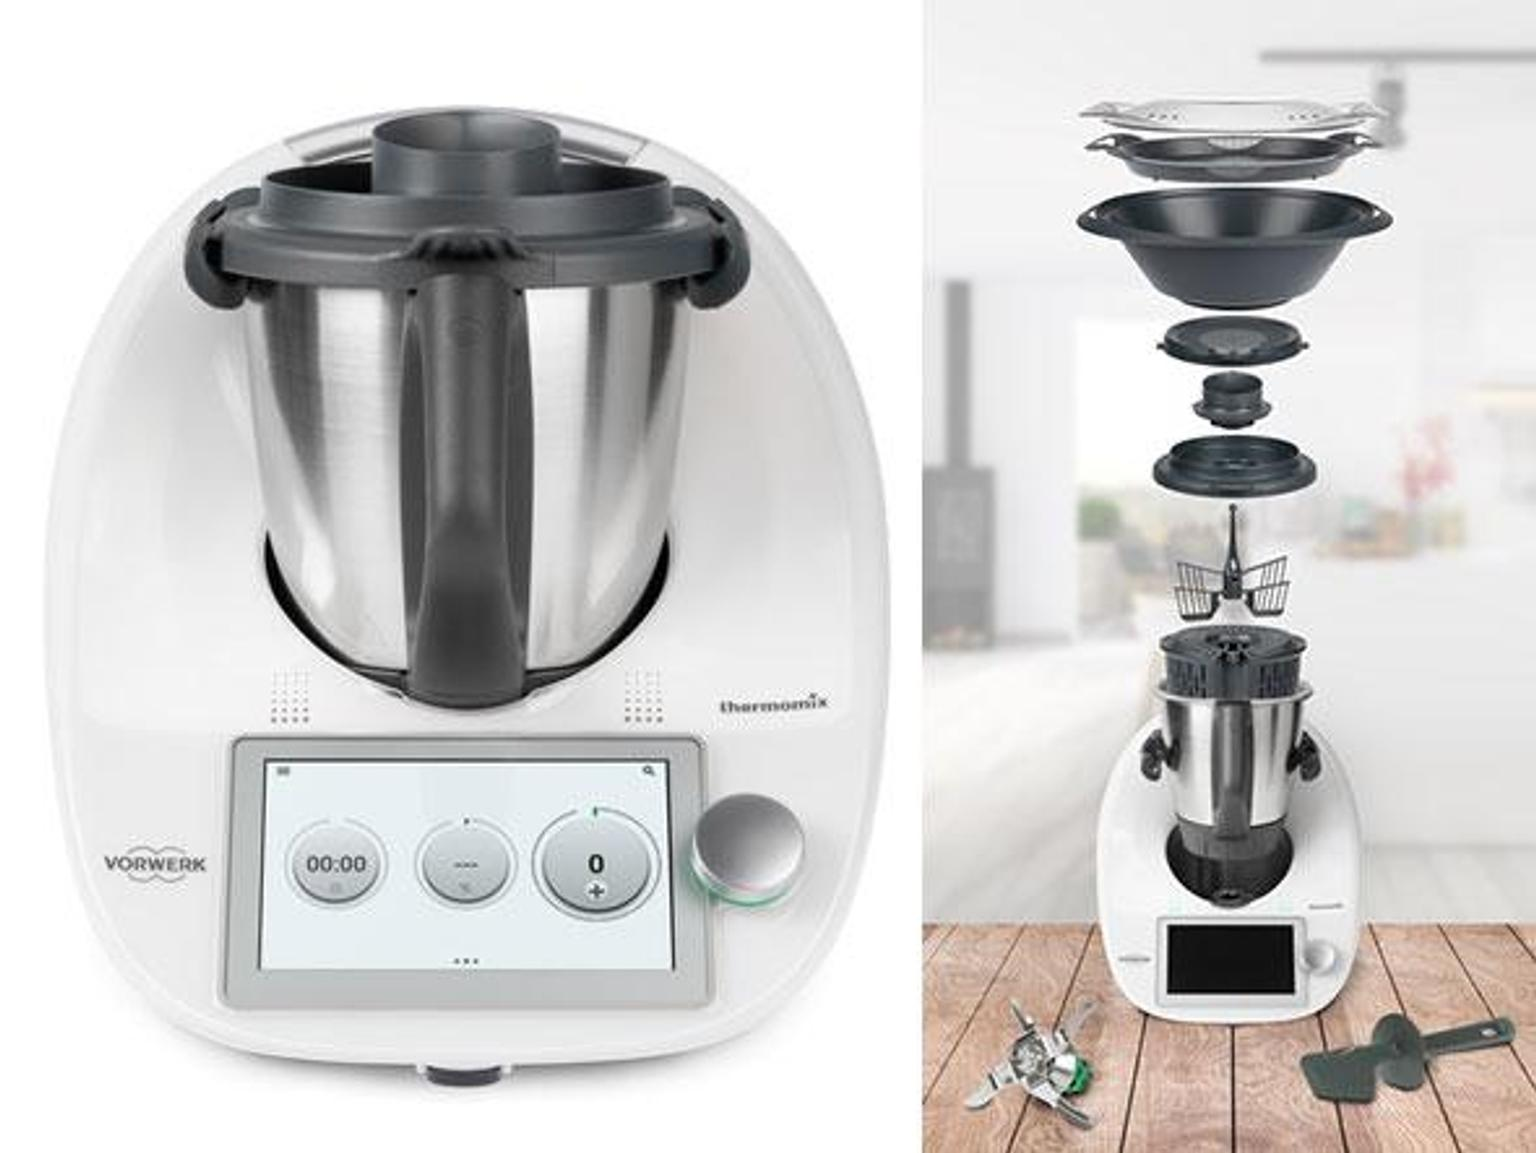 Thermomix Ratenzahlung